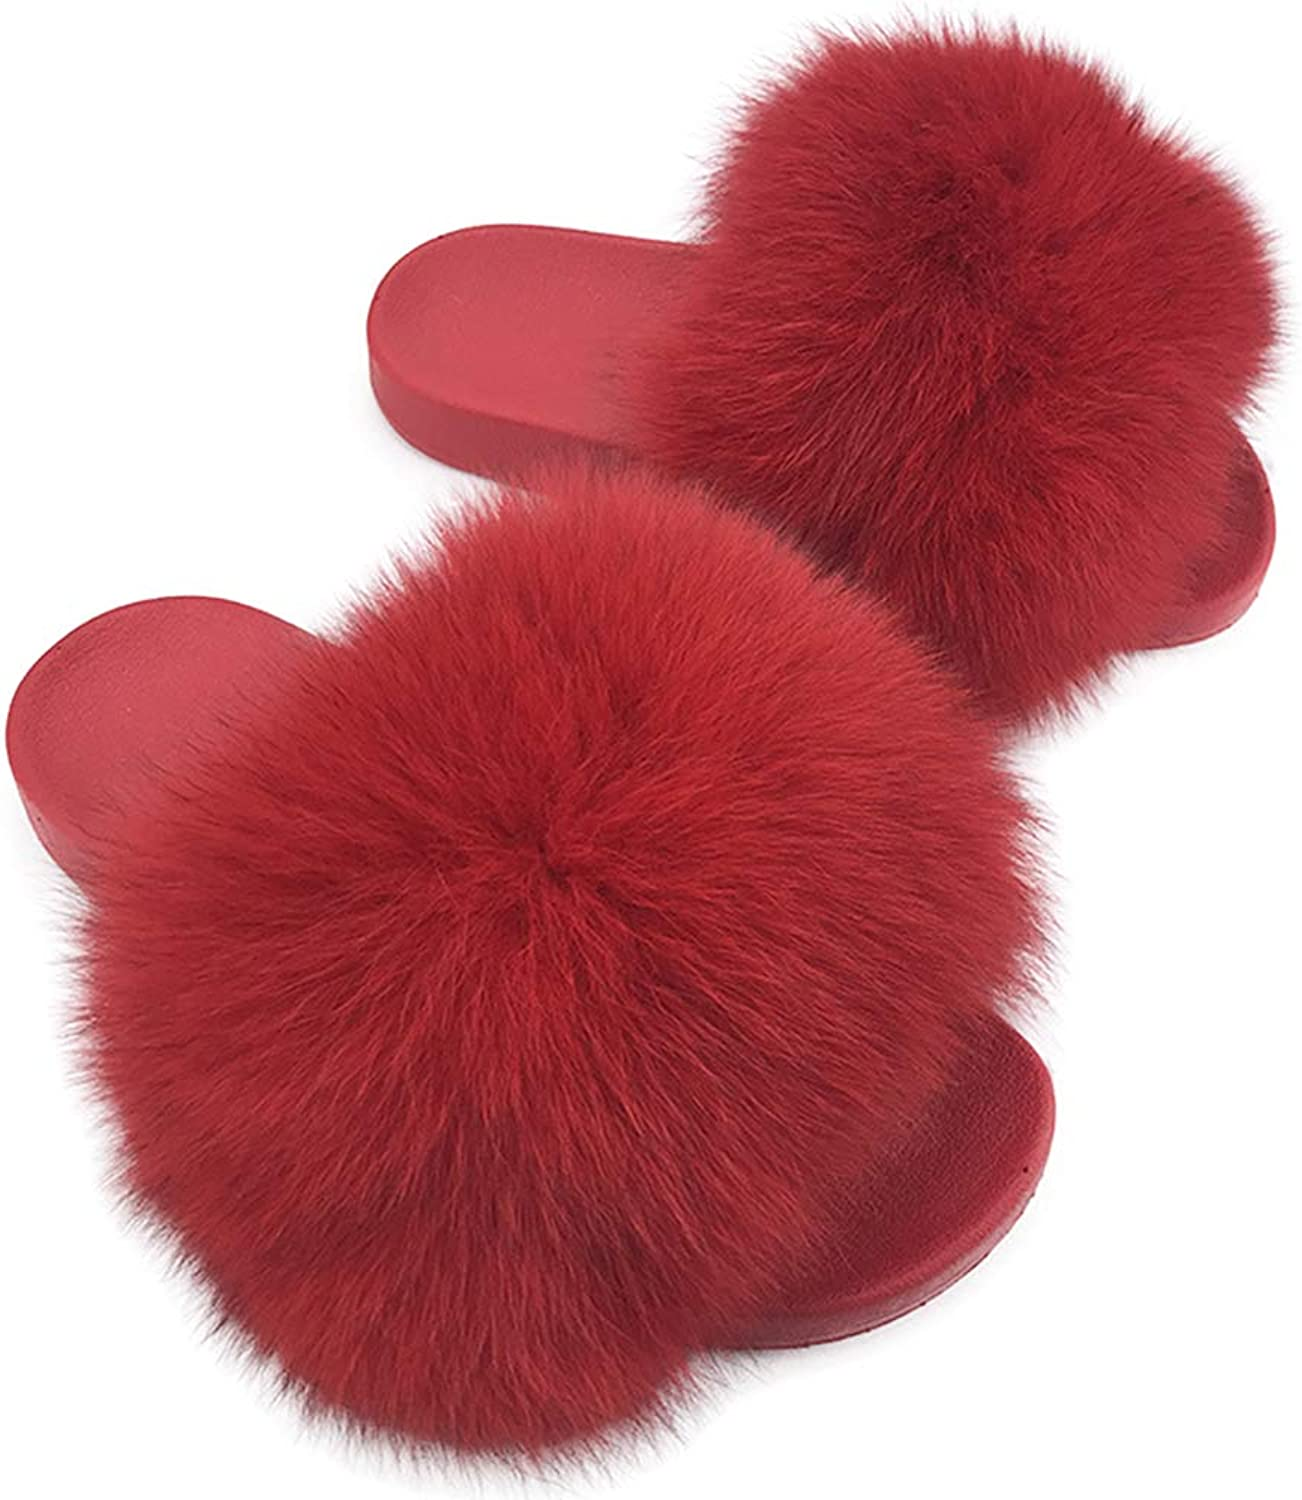 YUhe2018Cw Yu He Women Real Raccoon Fur Feather Vegan Leather Open Toe Single Strap Slip On Sandals Bright red 36